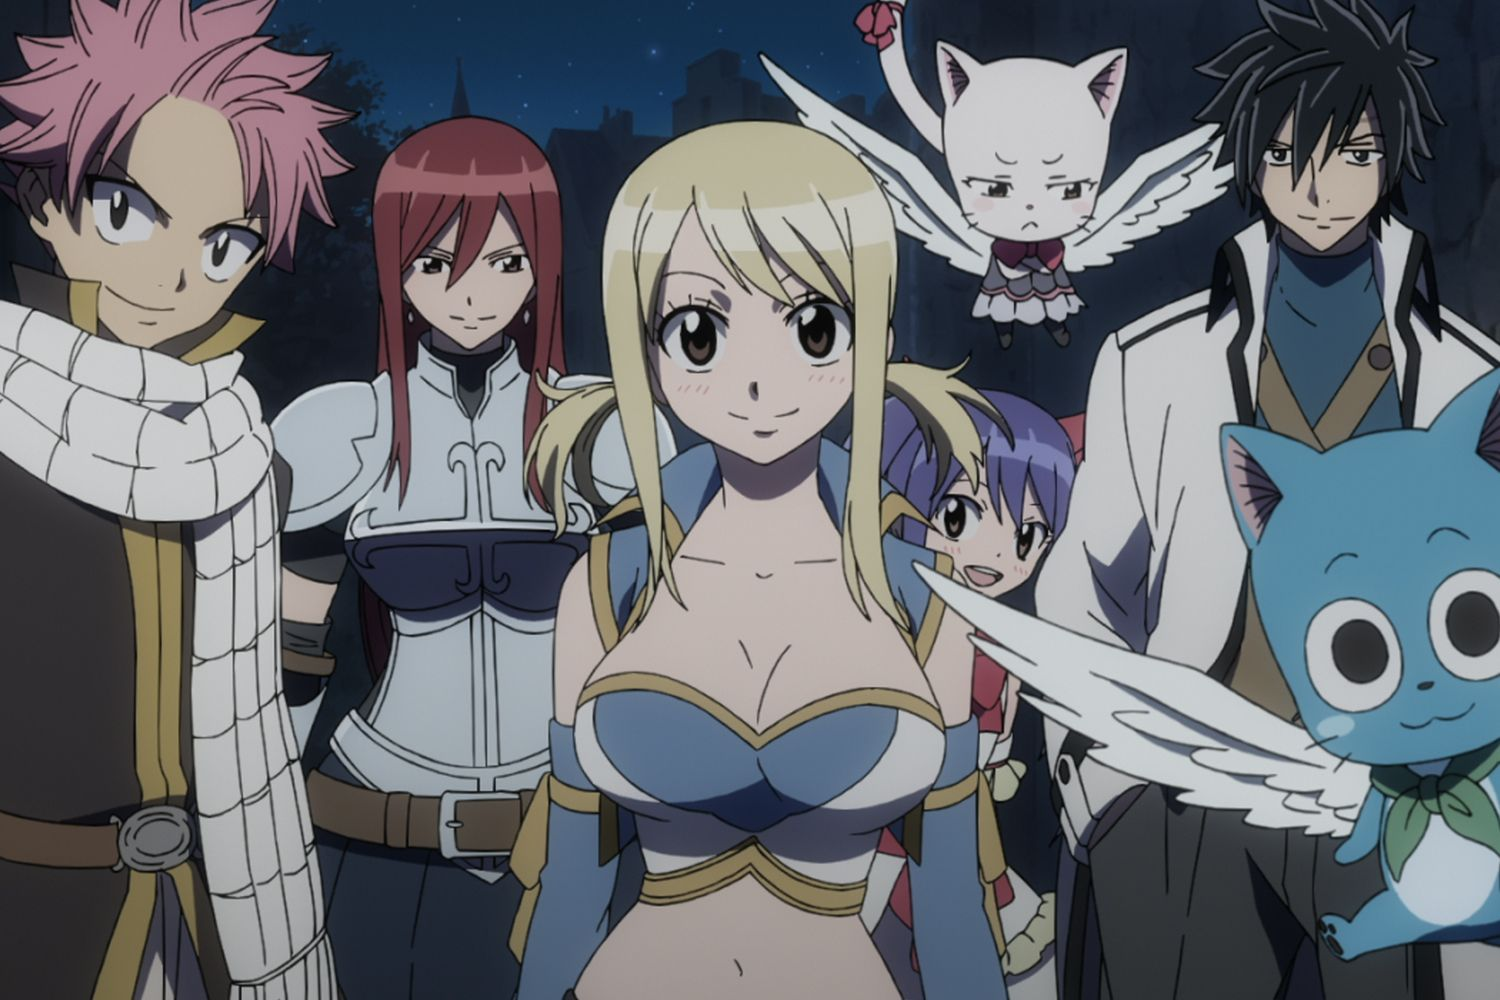 Fairy Tail the Movie: Phoenix Priestess (Blu-Ray) Review http://anime.about.com/od/fairytail/fl/Fairy-Tail-the-Movie-Phoenix-Priestess-Blu-Ray-Review.htm